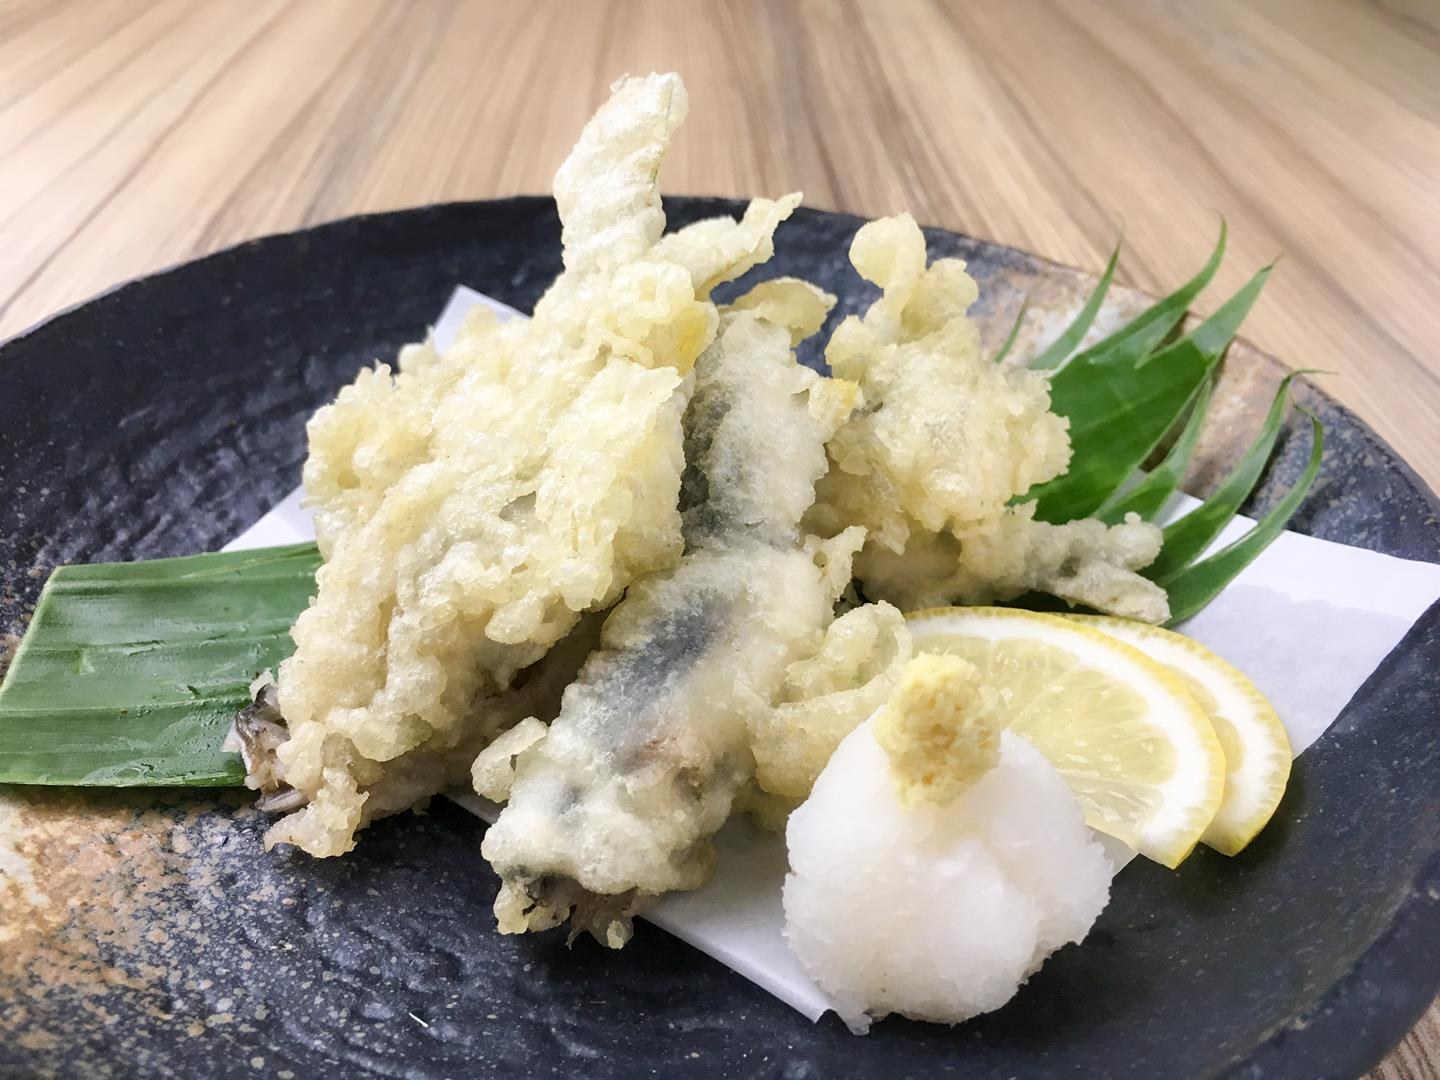 Chi ayu tempura is a delectable dish of young fish